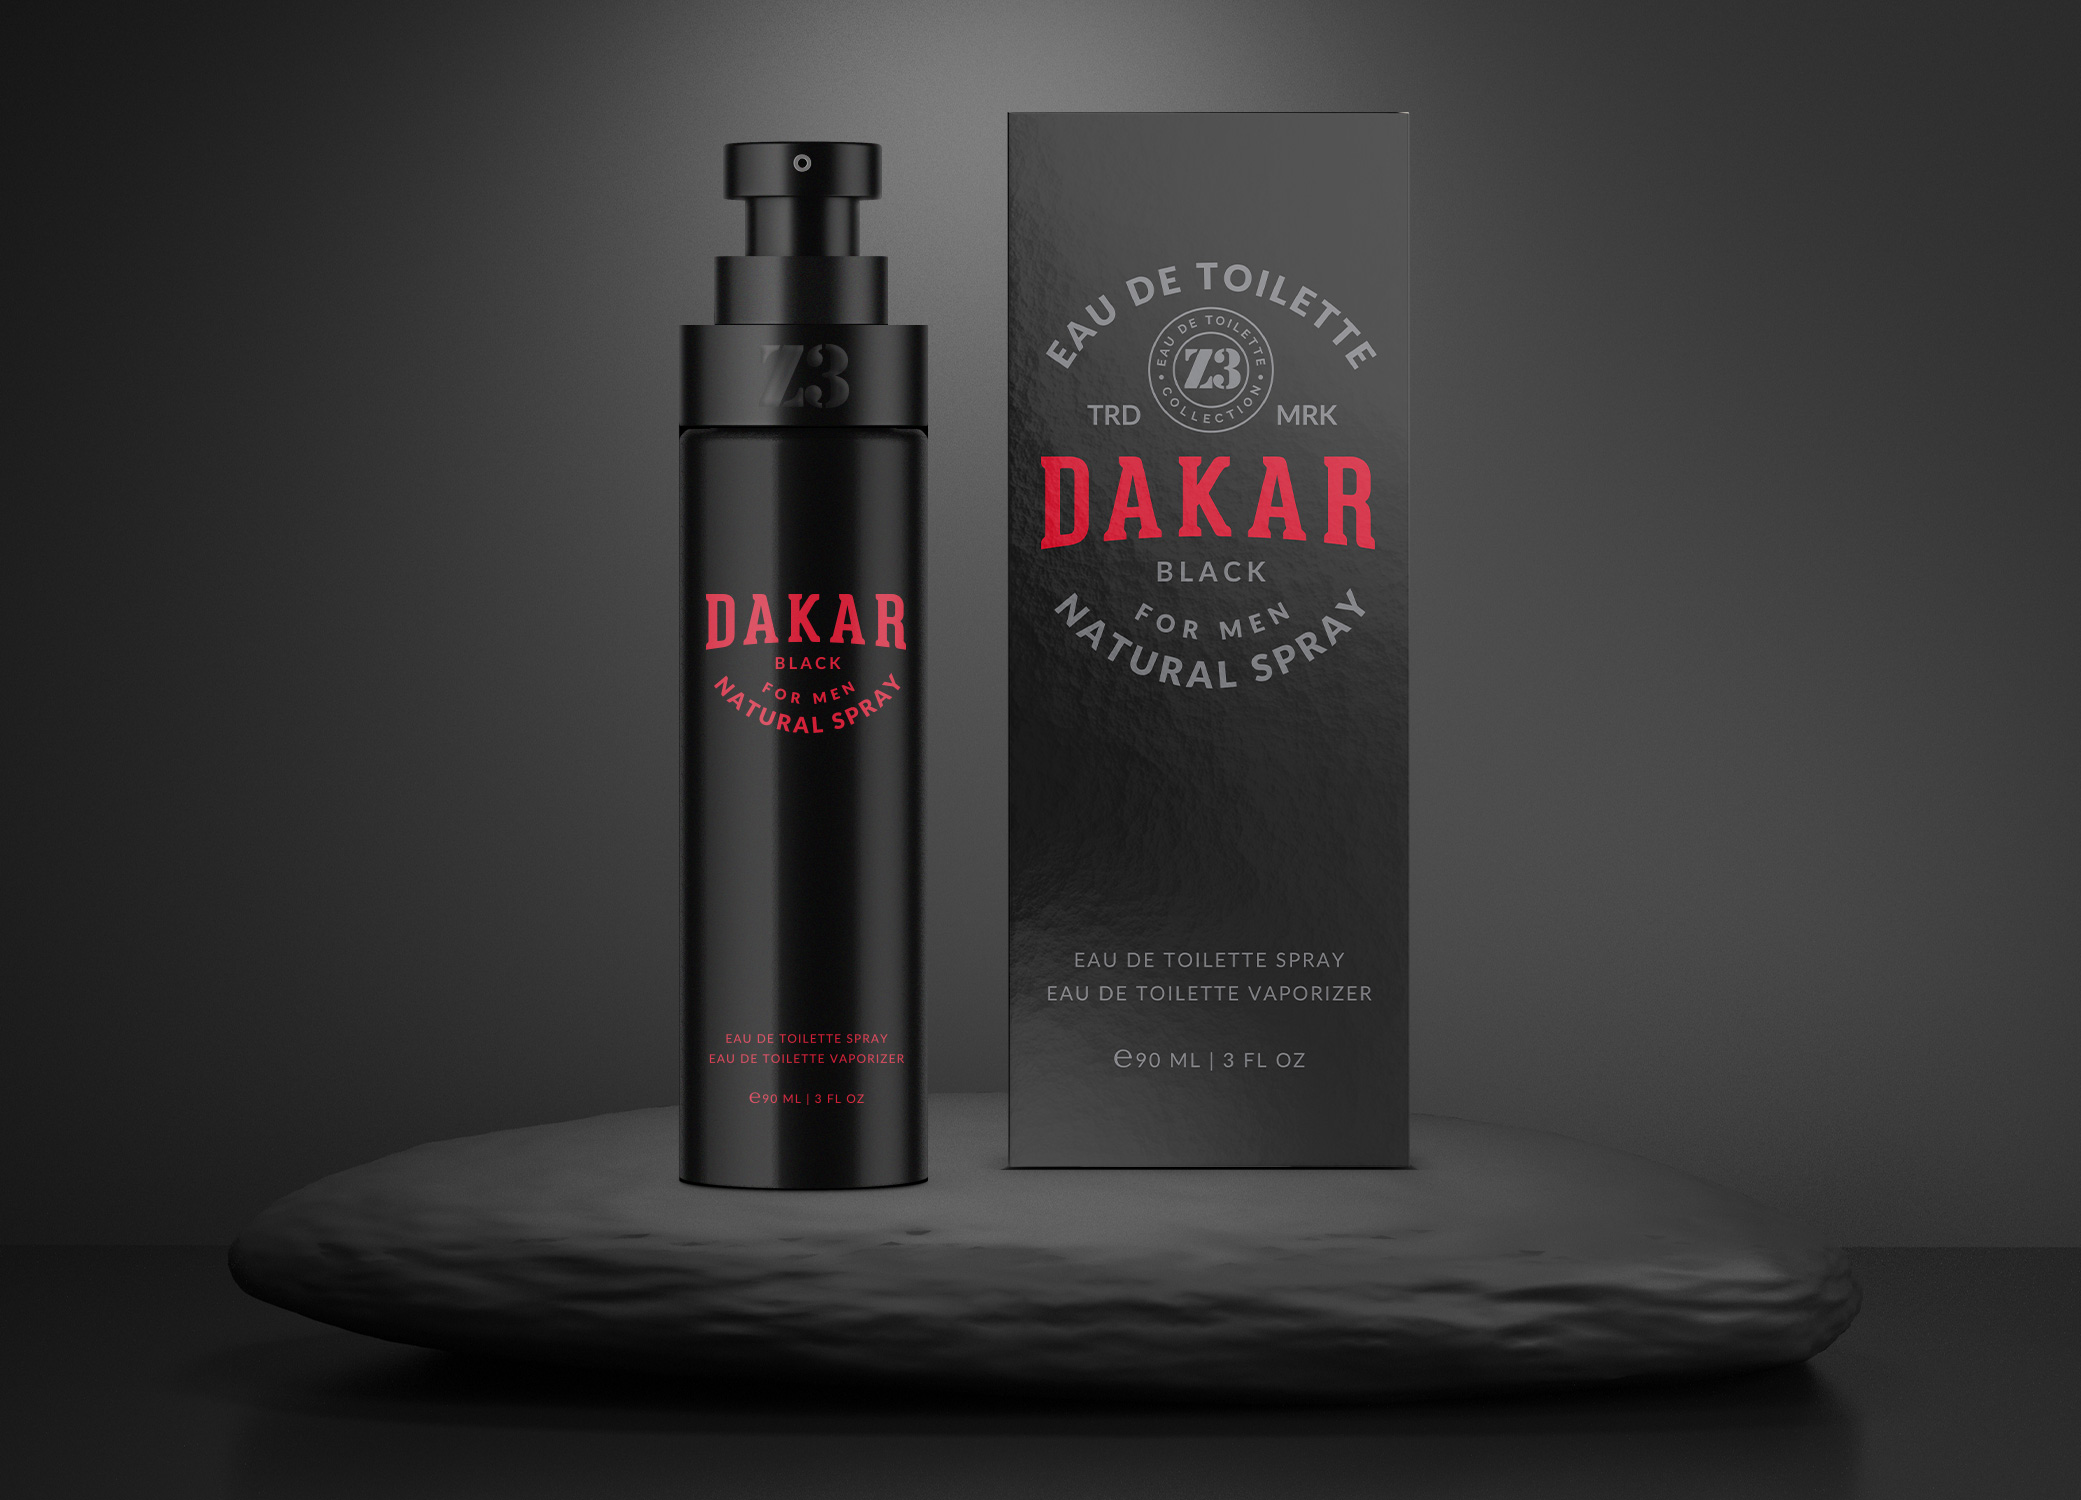 YZY Perfume men's fragrance bottle and package design in classic black, red, and white for Z3 Dakar product.